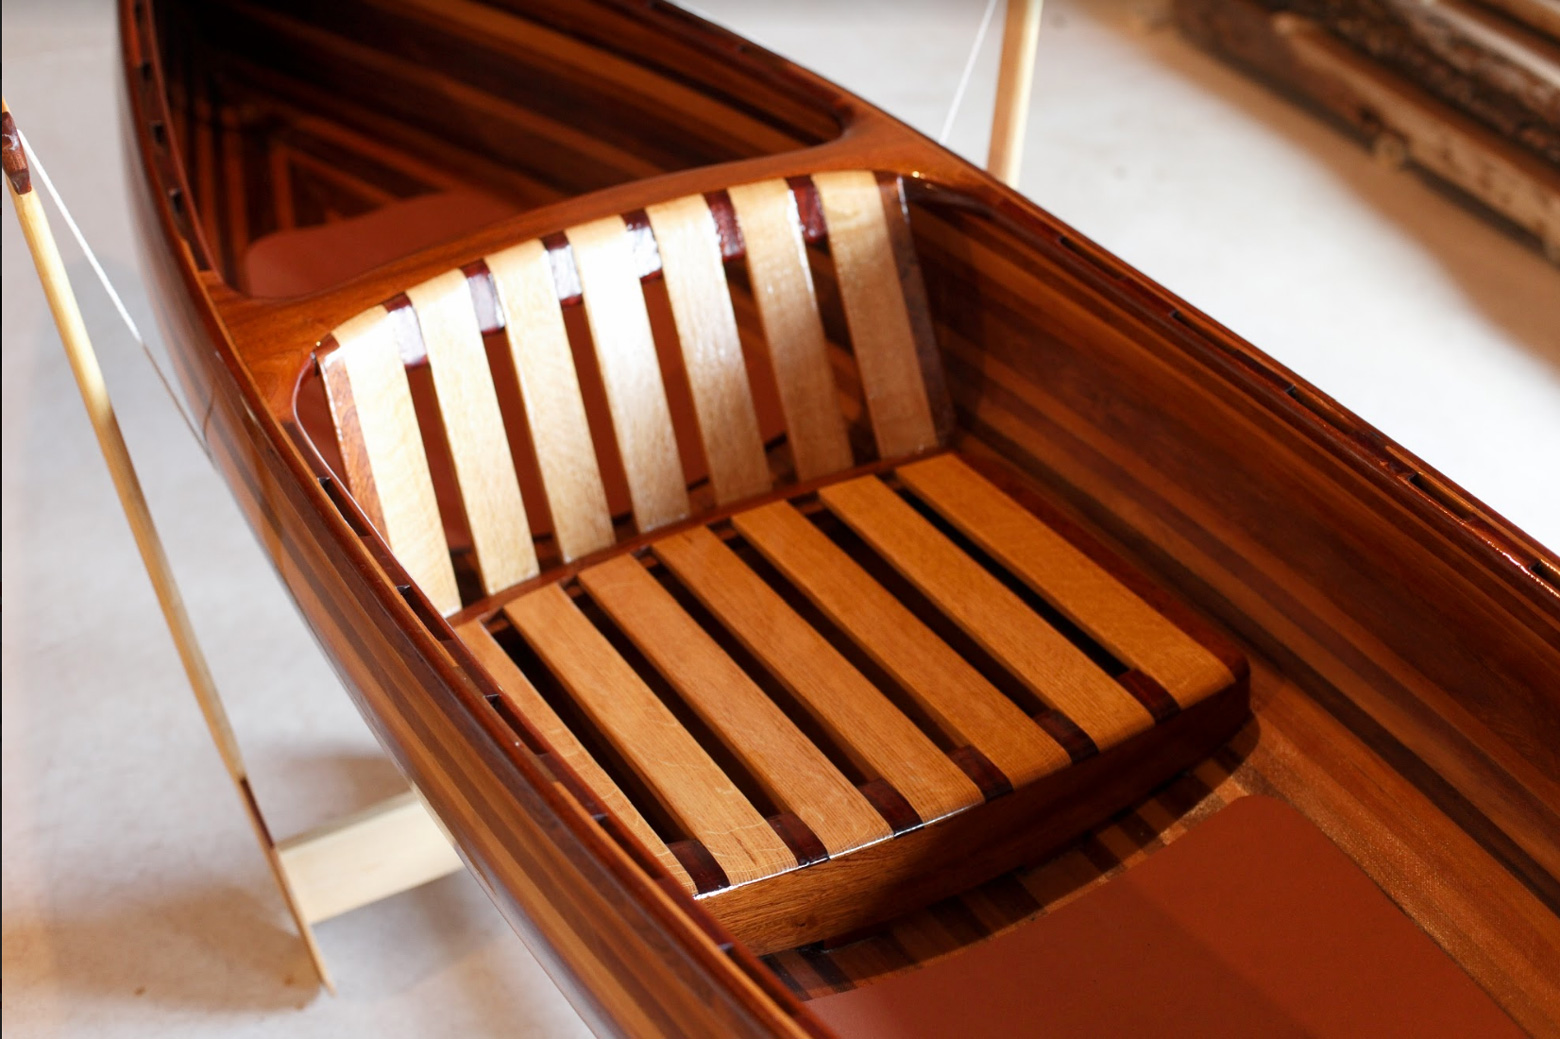 a photo of a wooden boat seat